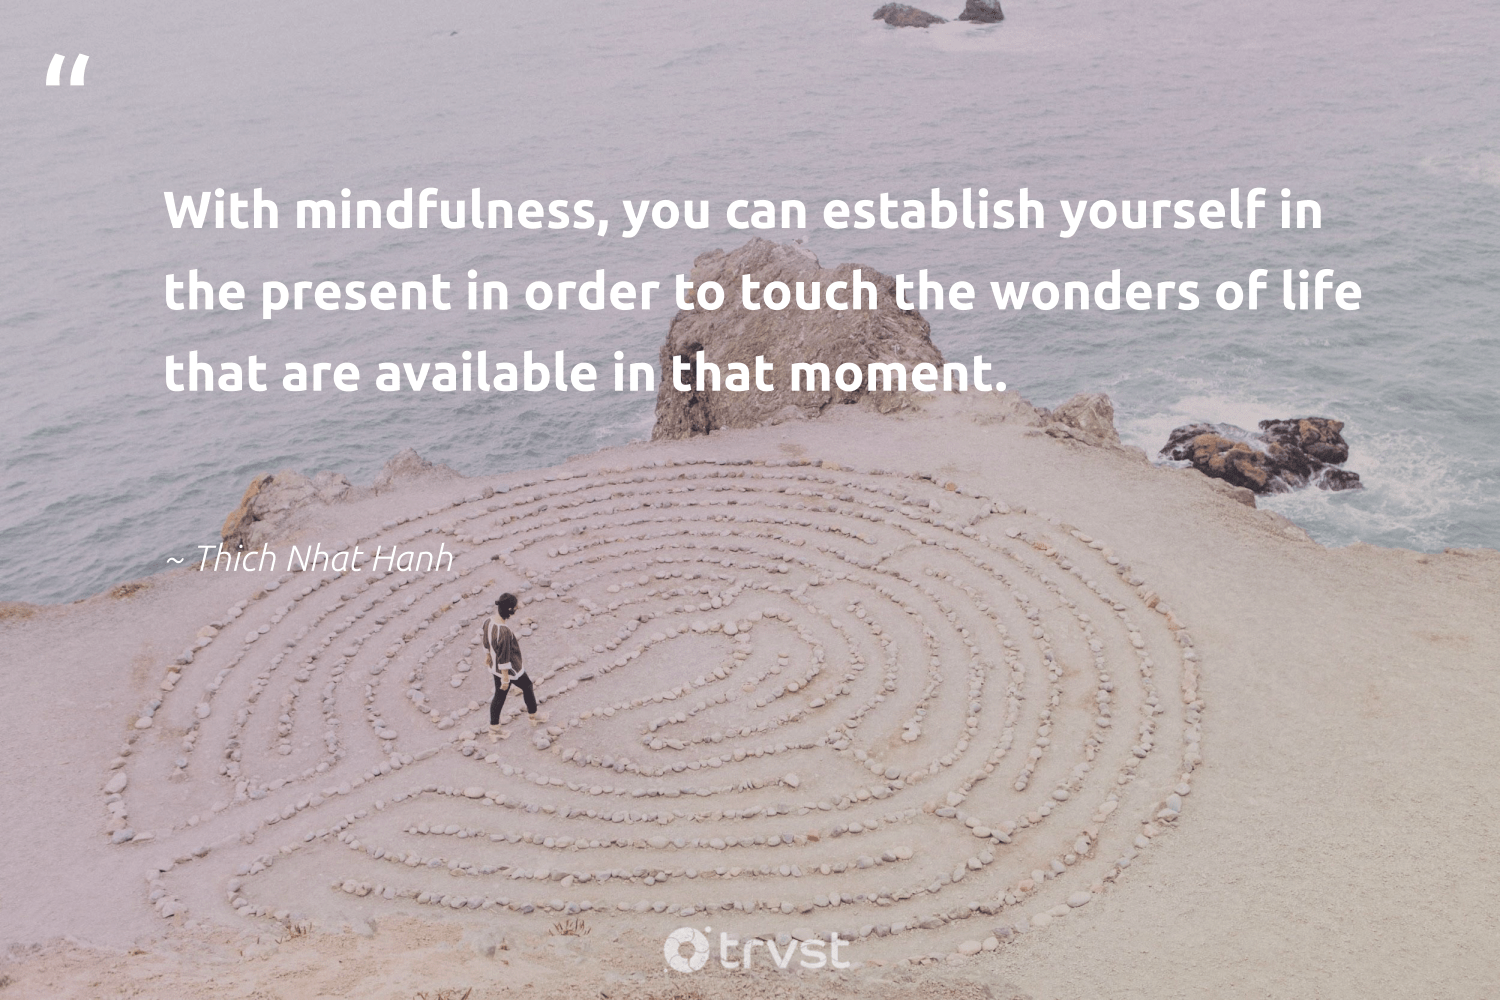 """""""With mindfulness, you can establish yourself in the present in order to touch the wonders of life that are available in that moment.""""  - Thich Nhat Hanh #trvst #quotes #mindfulness #creativemindset #kindness #begreat #collectiveaction #mindful #mindset #changemakers #dogood #meditate"""